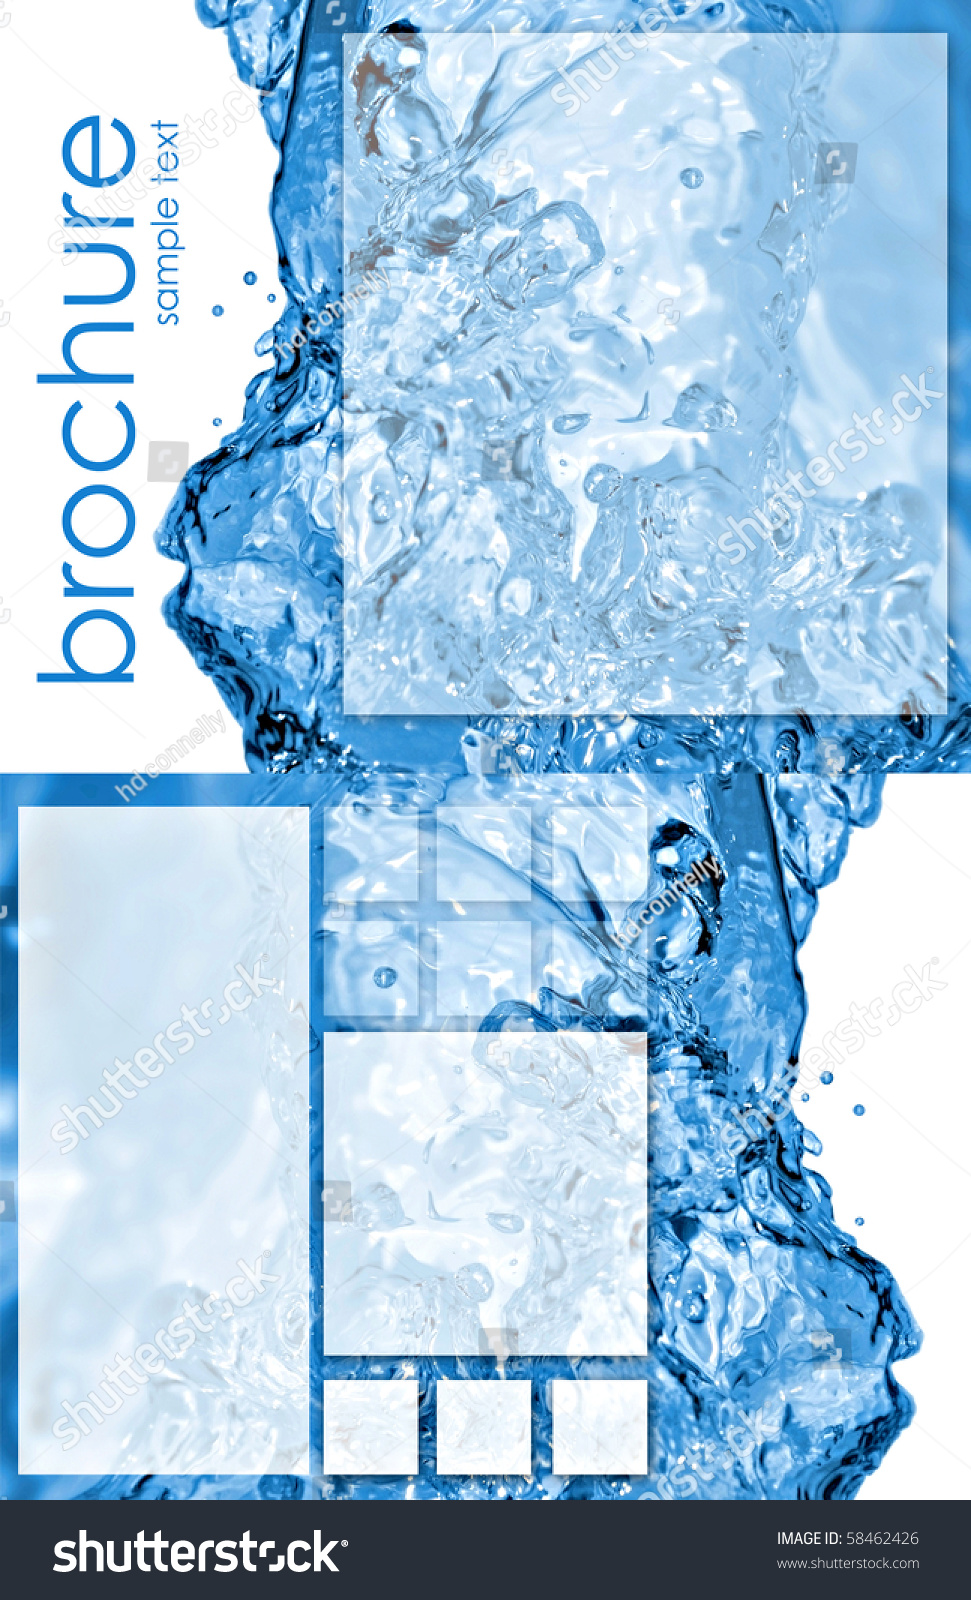 Tri fold brochure template with water splash 2 for Water brochure template